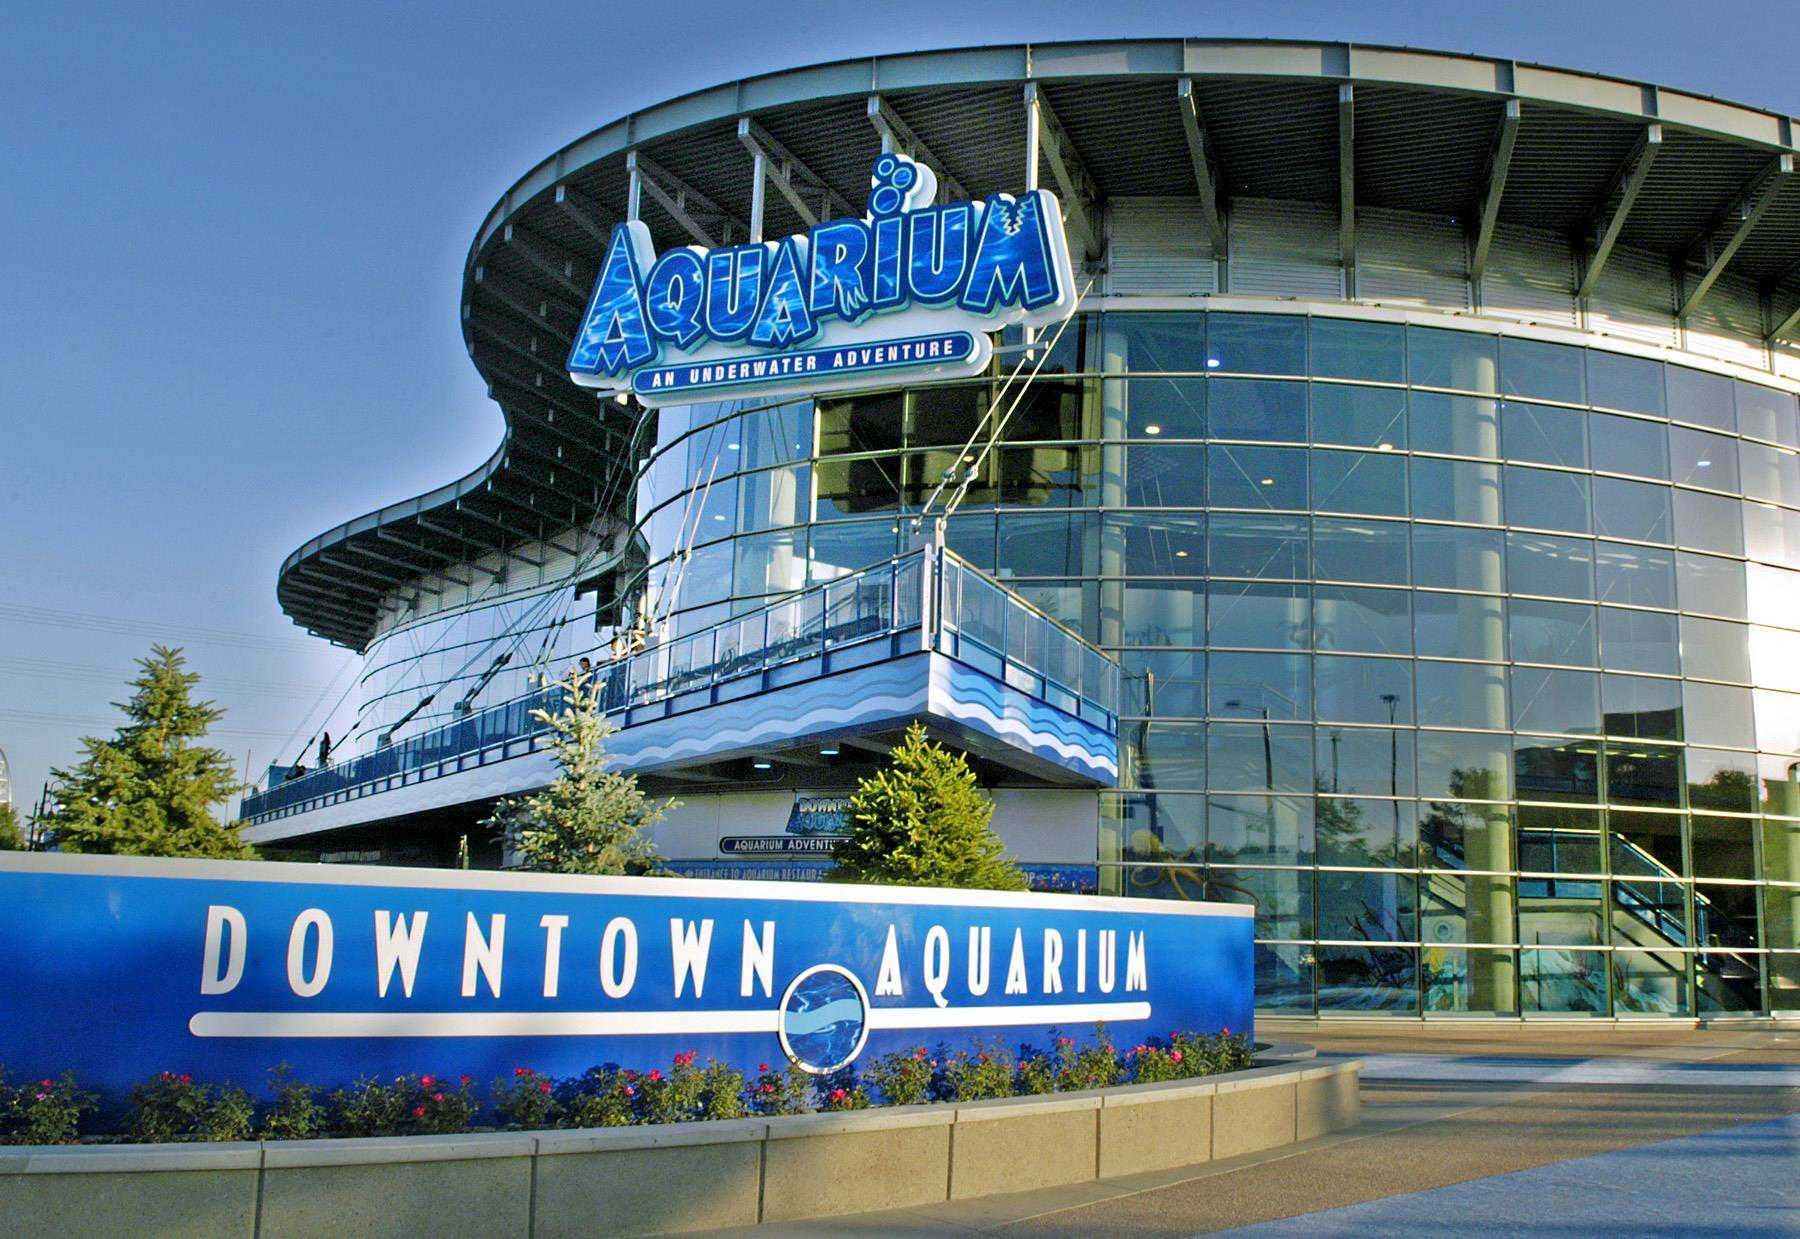 Downtown aquarium coupons near me in denver 8coupons for Fish store denver